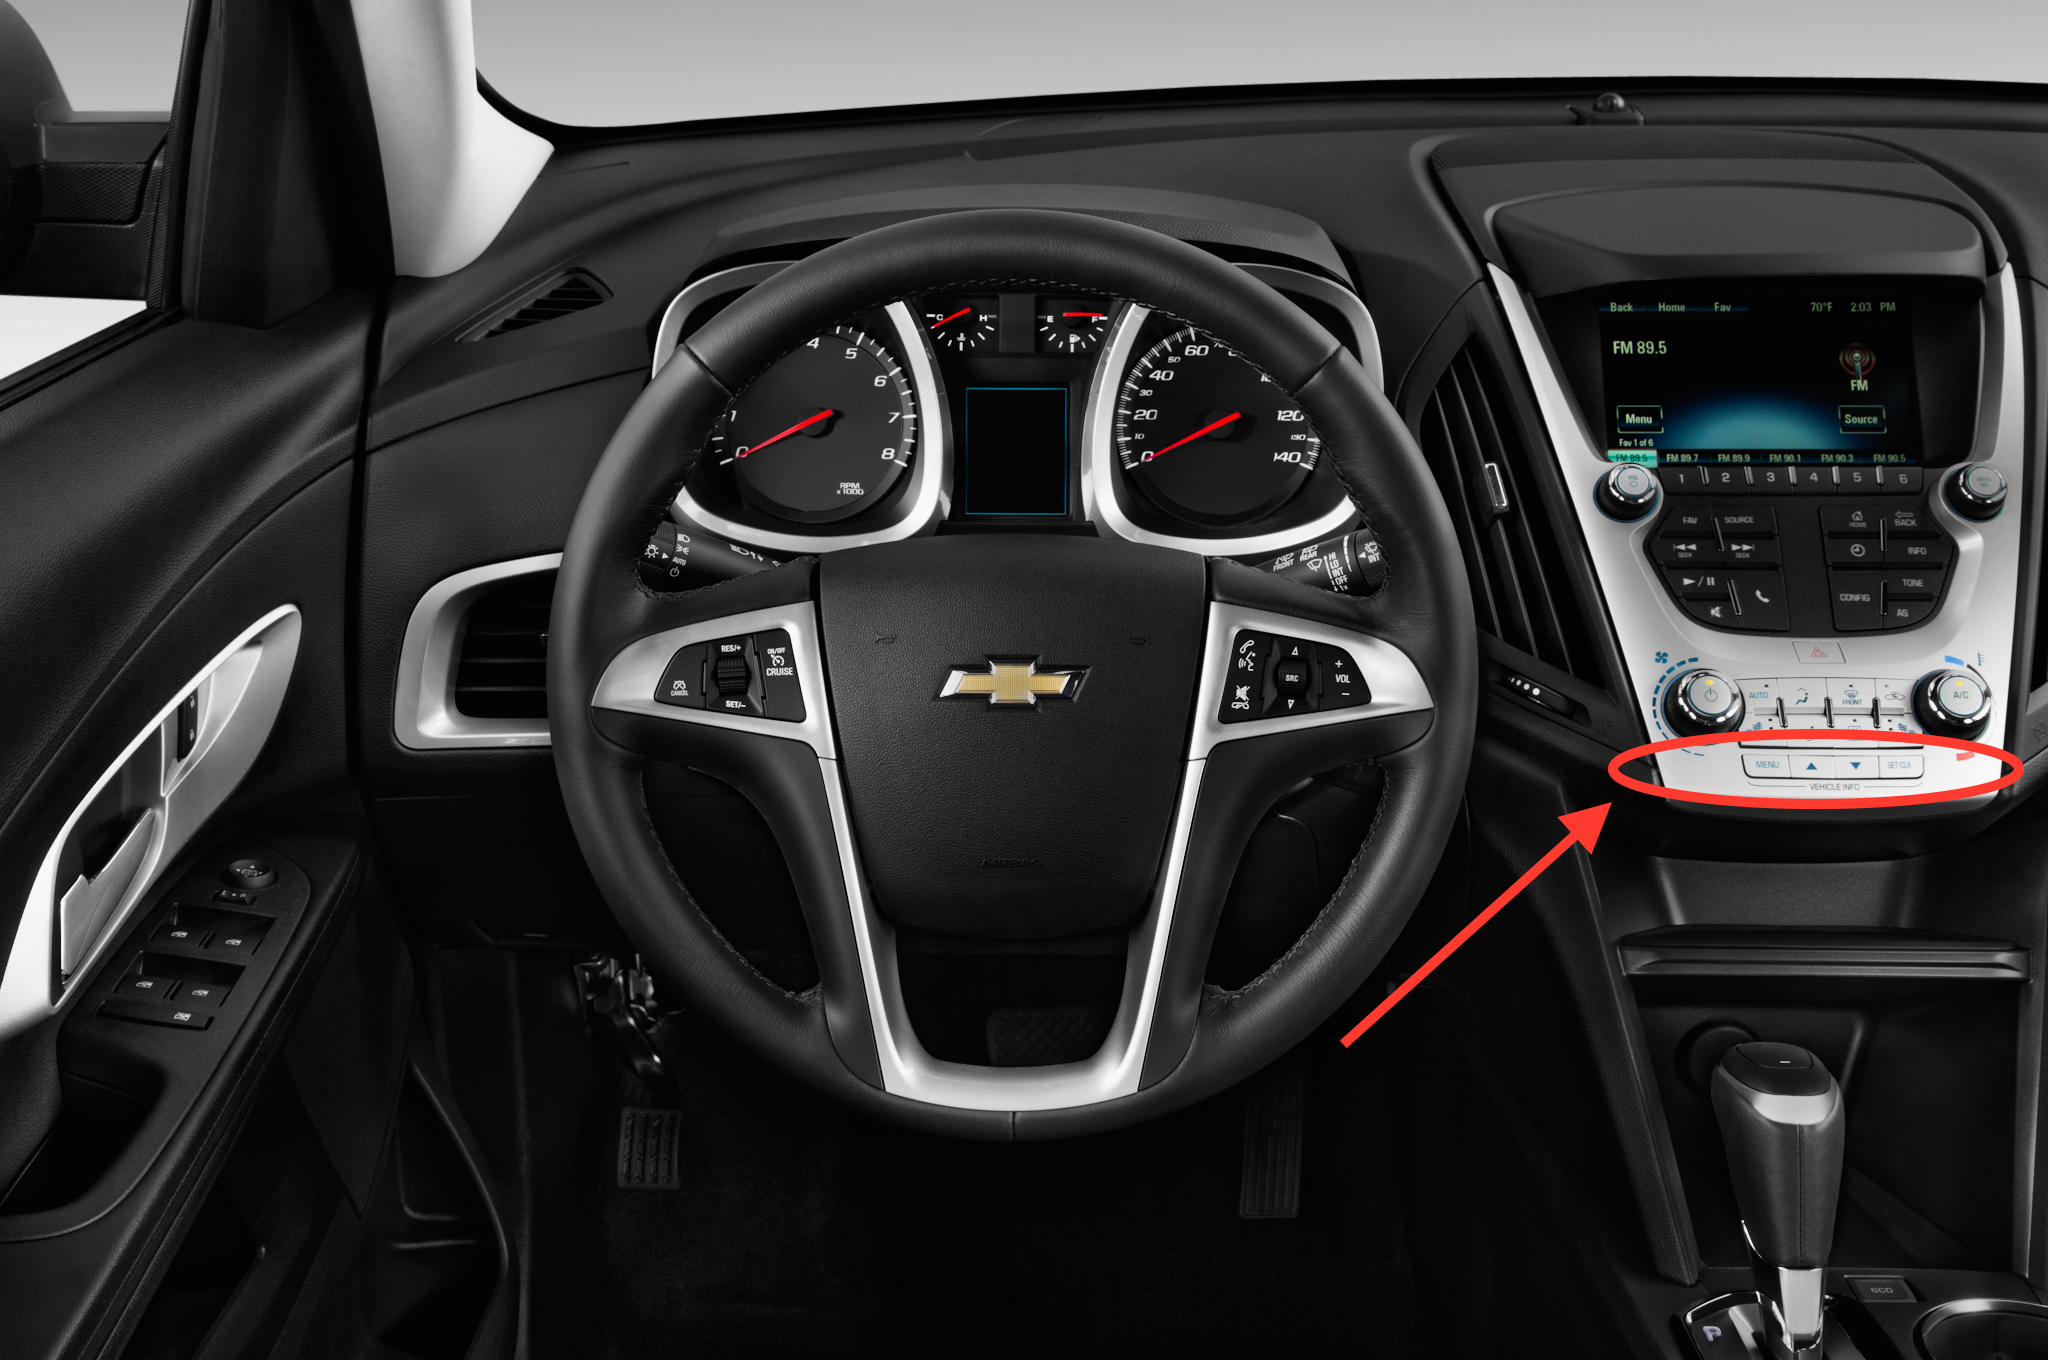 2017 Chevy Equinox Interior